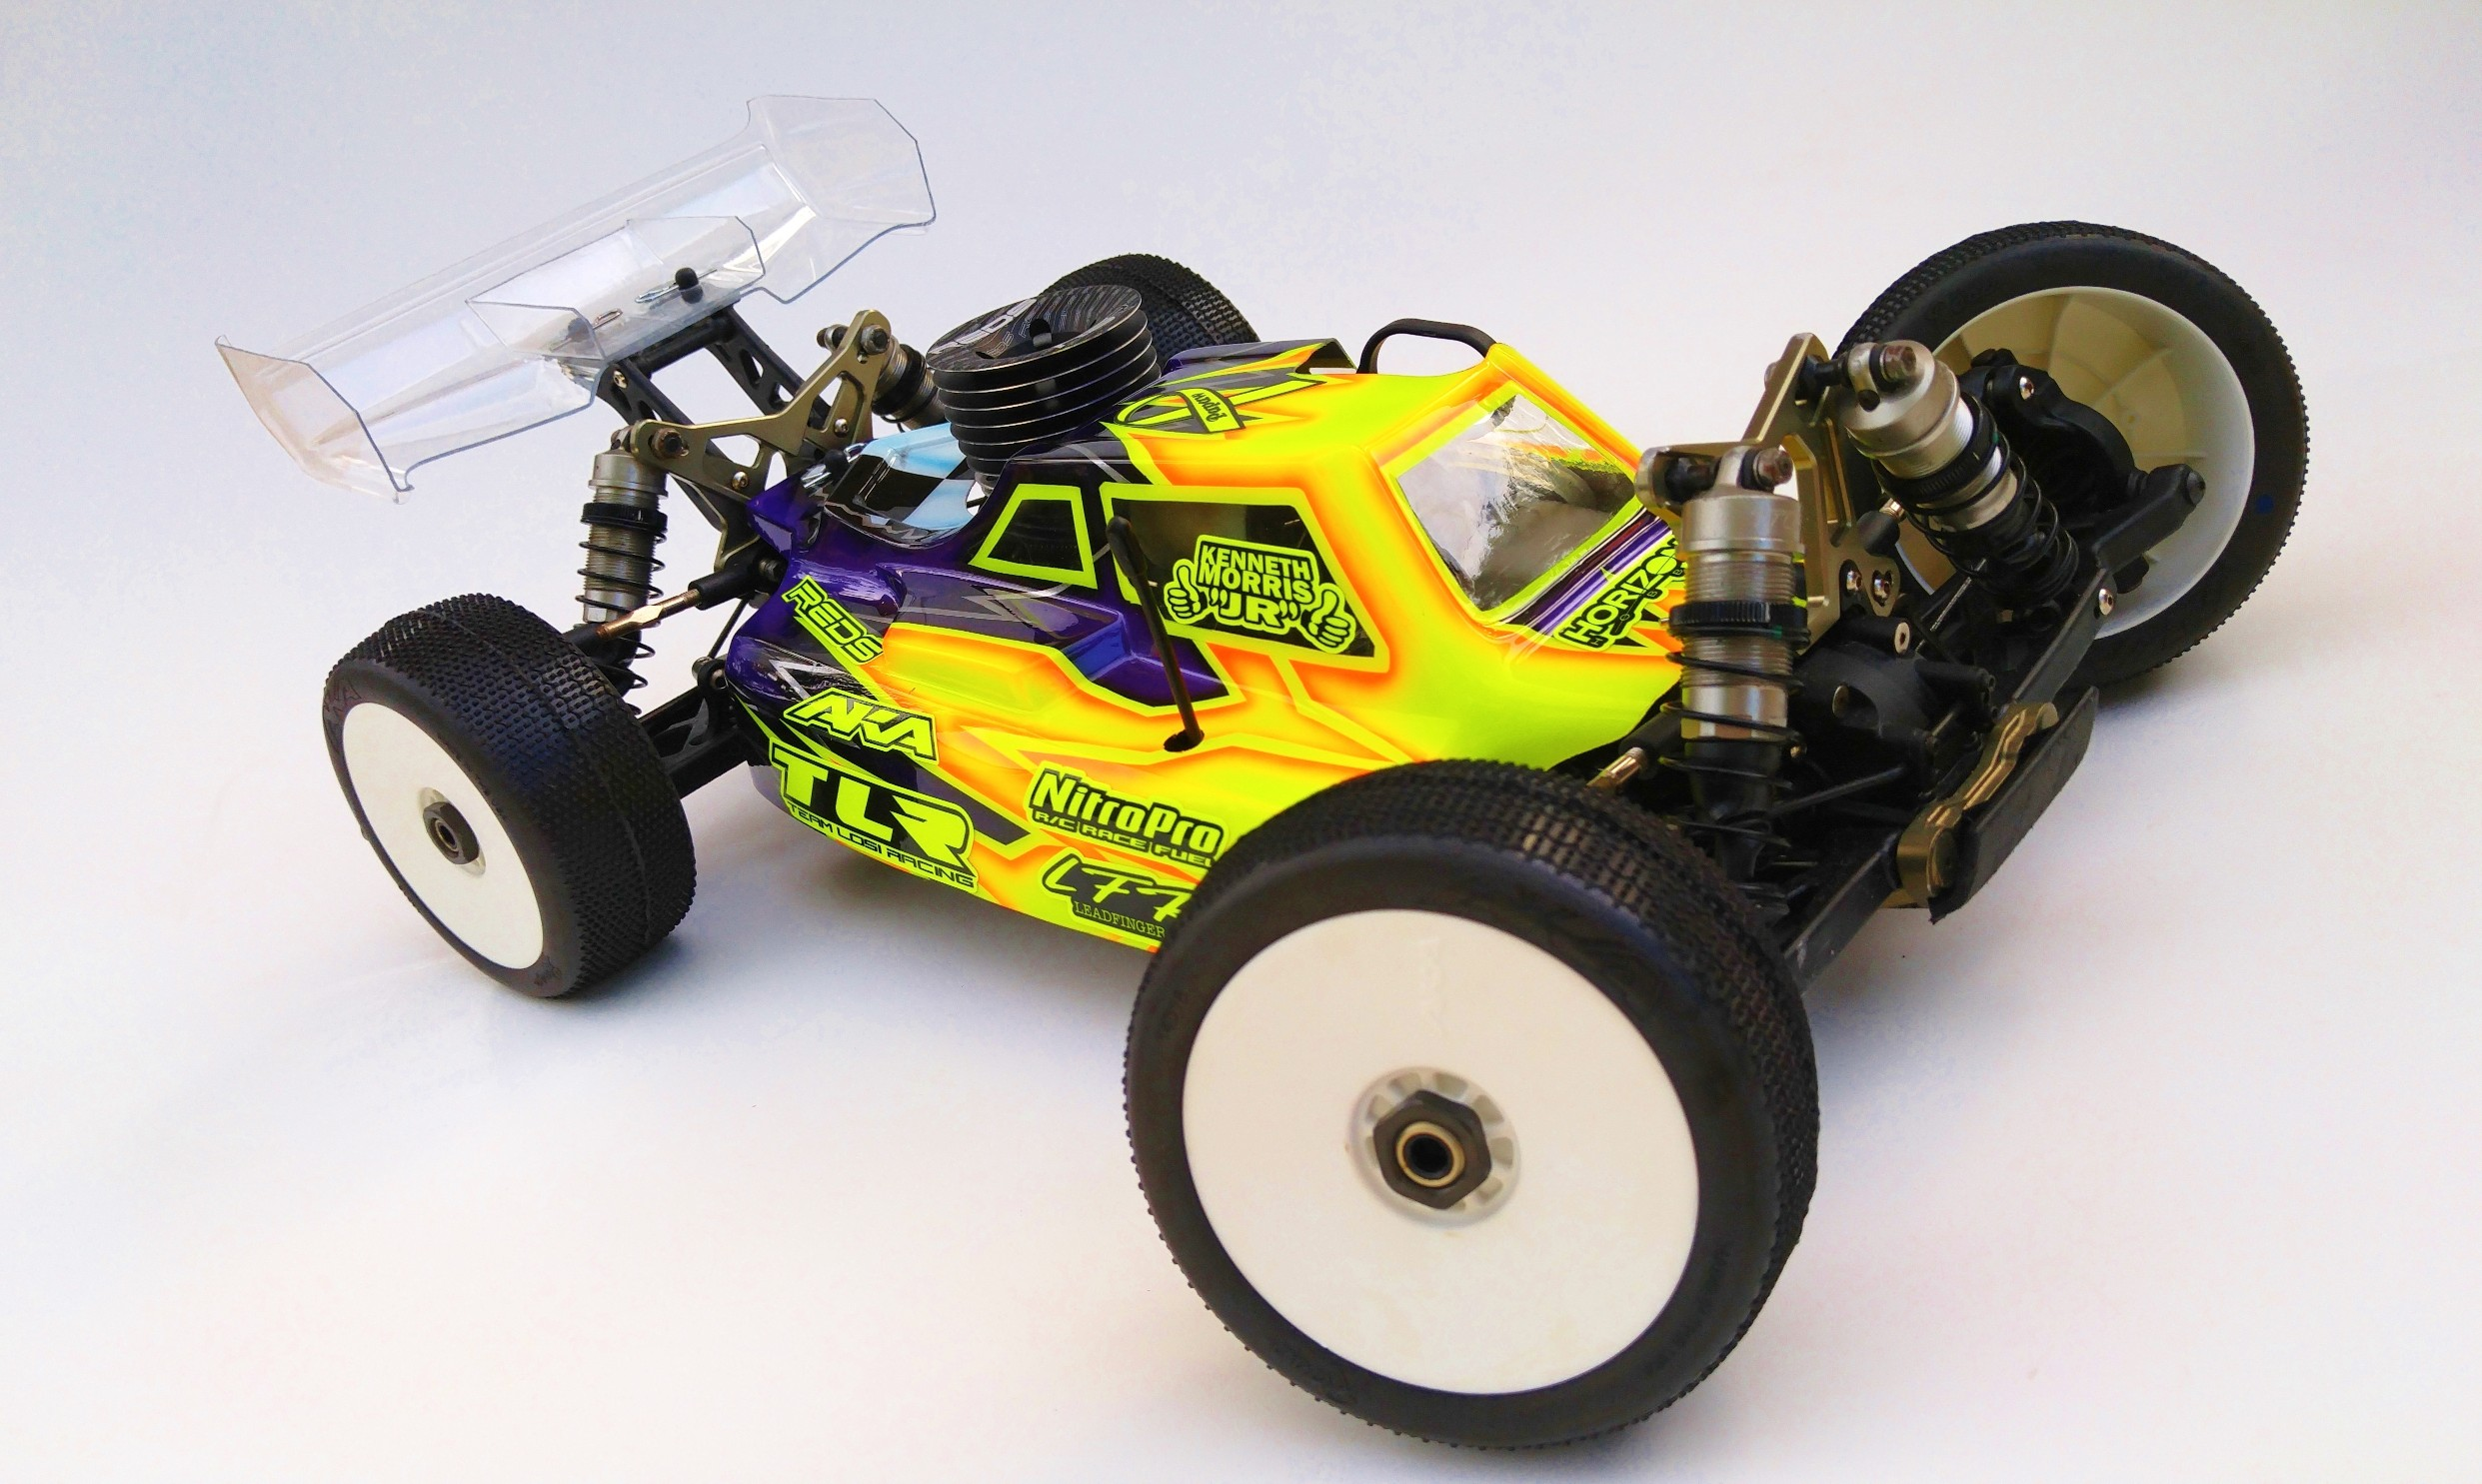 Leadfinger LFR Assassin body (clear) for the TLR 4.0 nitro buggy